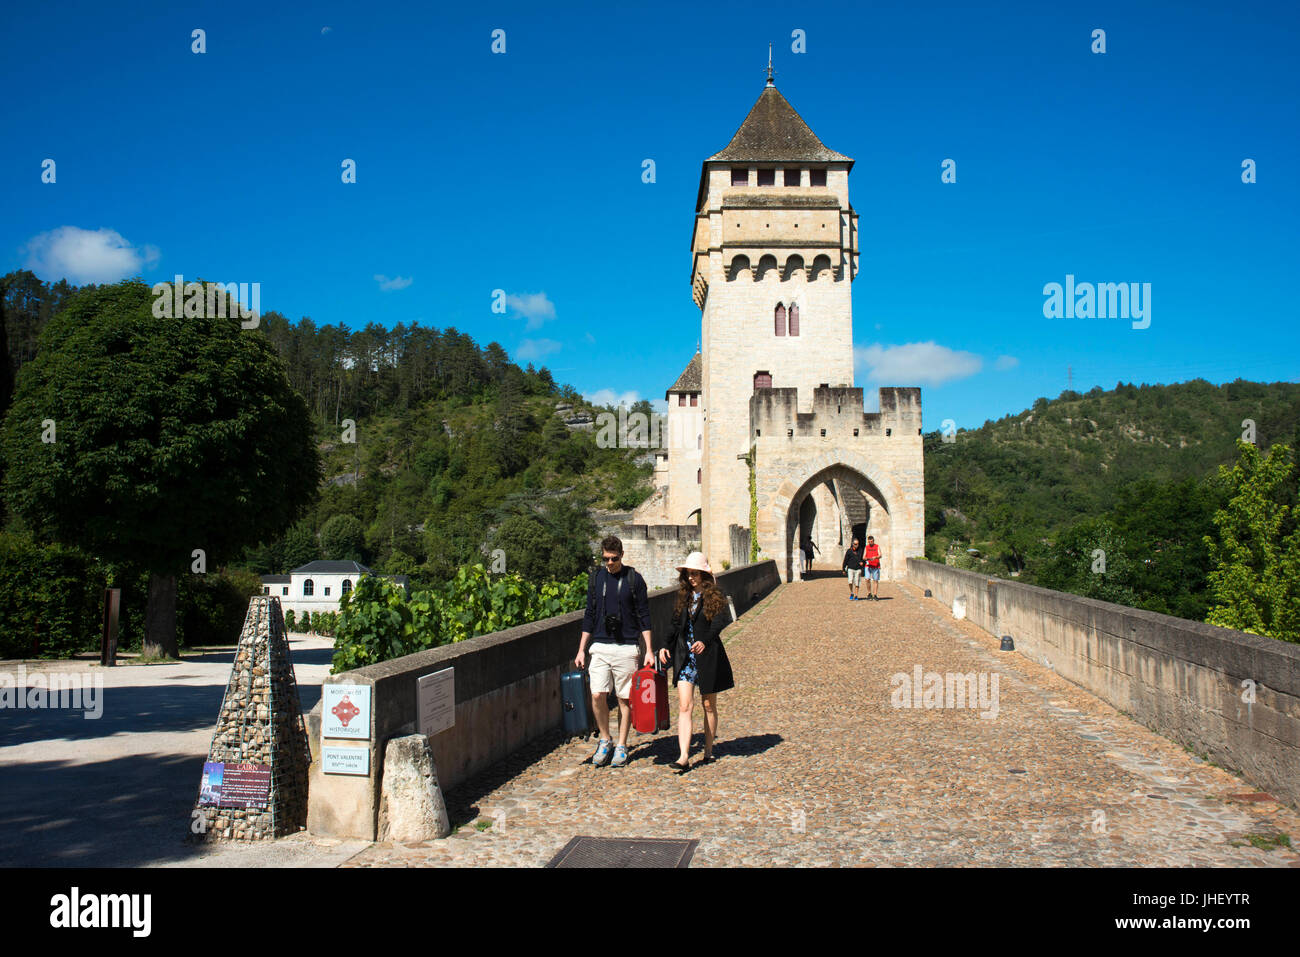 Over the medieval Pont Valentre over the River Lot, Cahors, The Lot, France Stock Photo